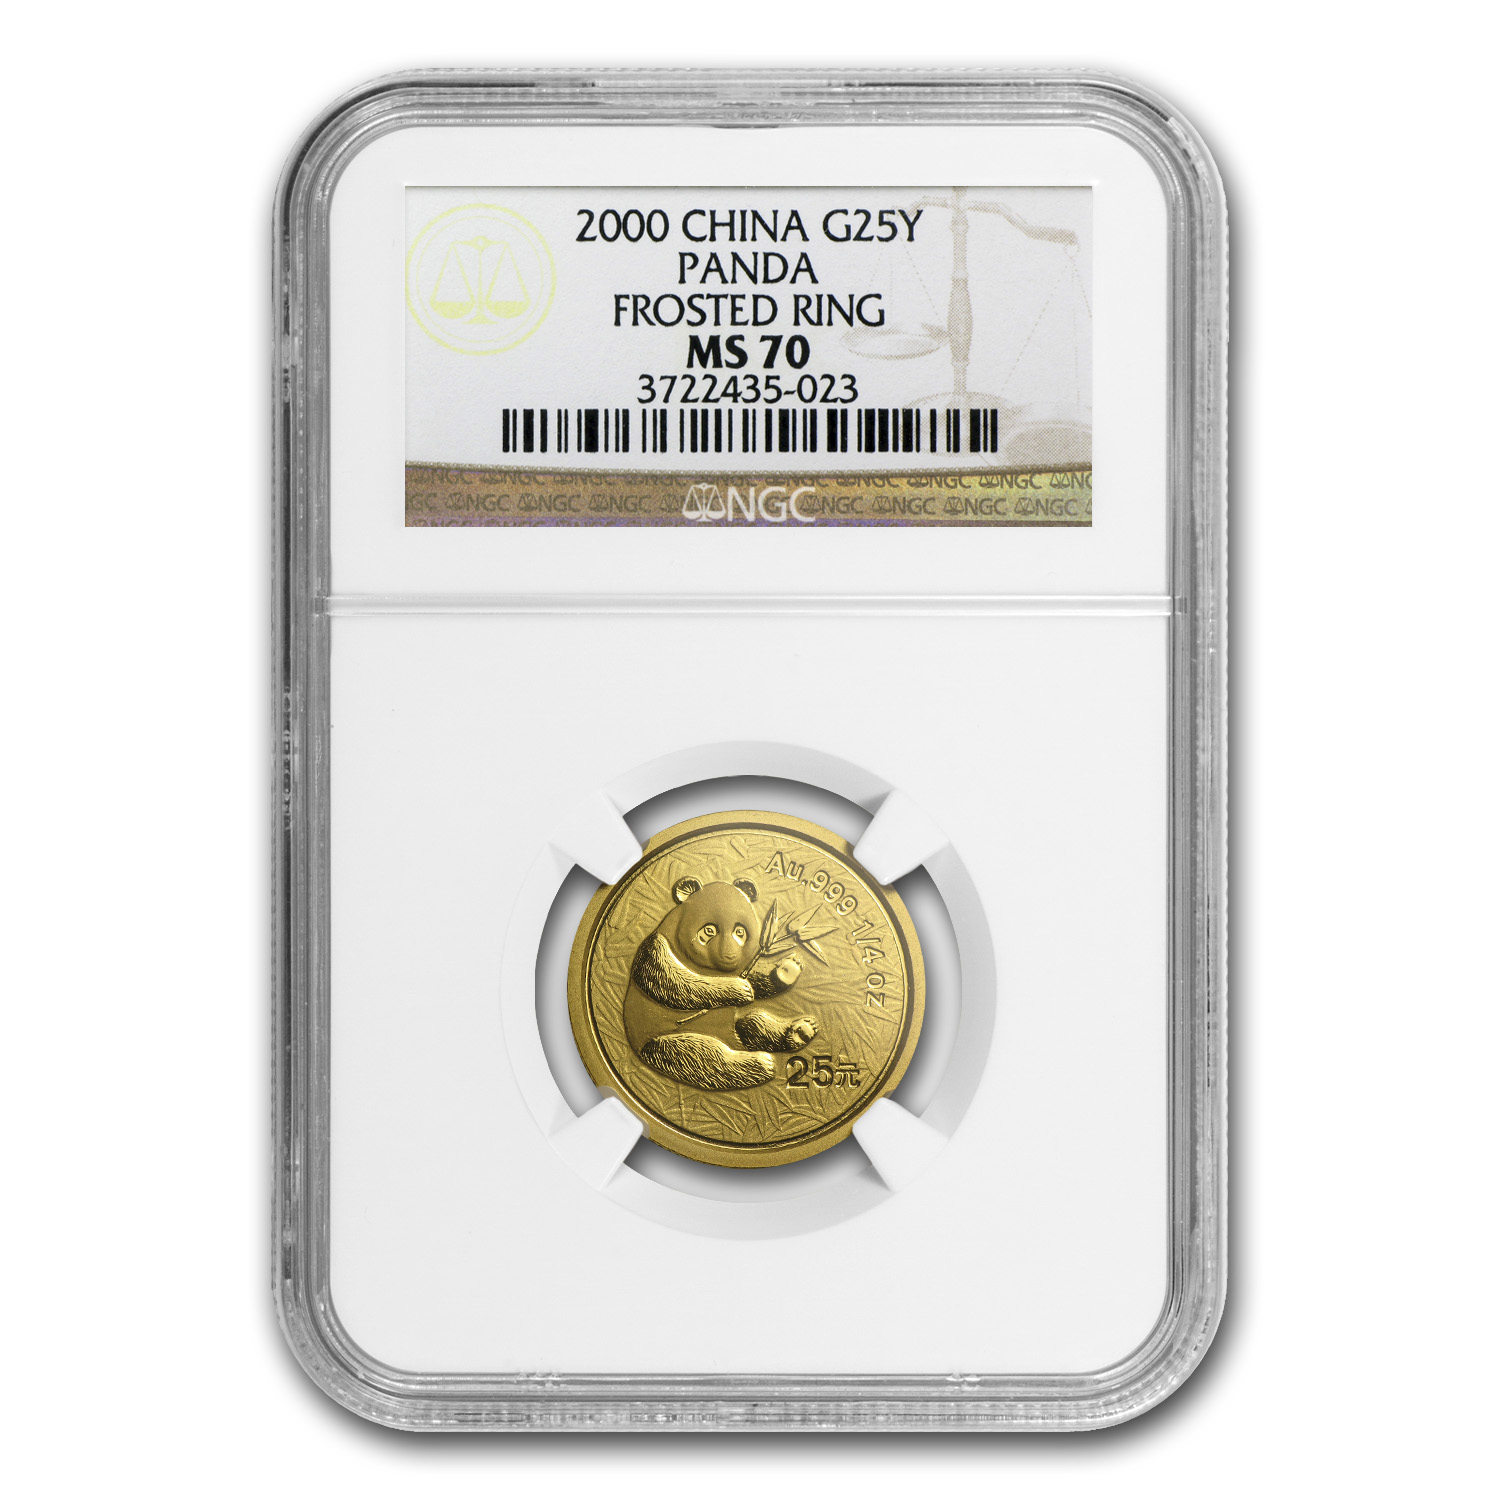 2000 (1/4 oz) Gold Chinese Panda - MS-70 NGC - Frosted